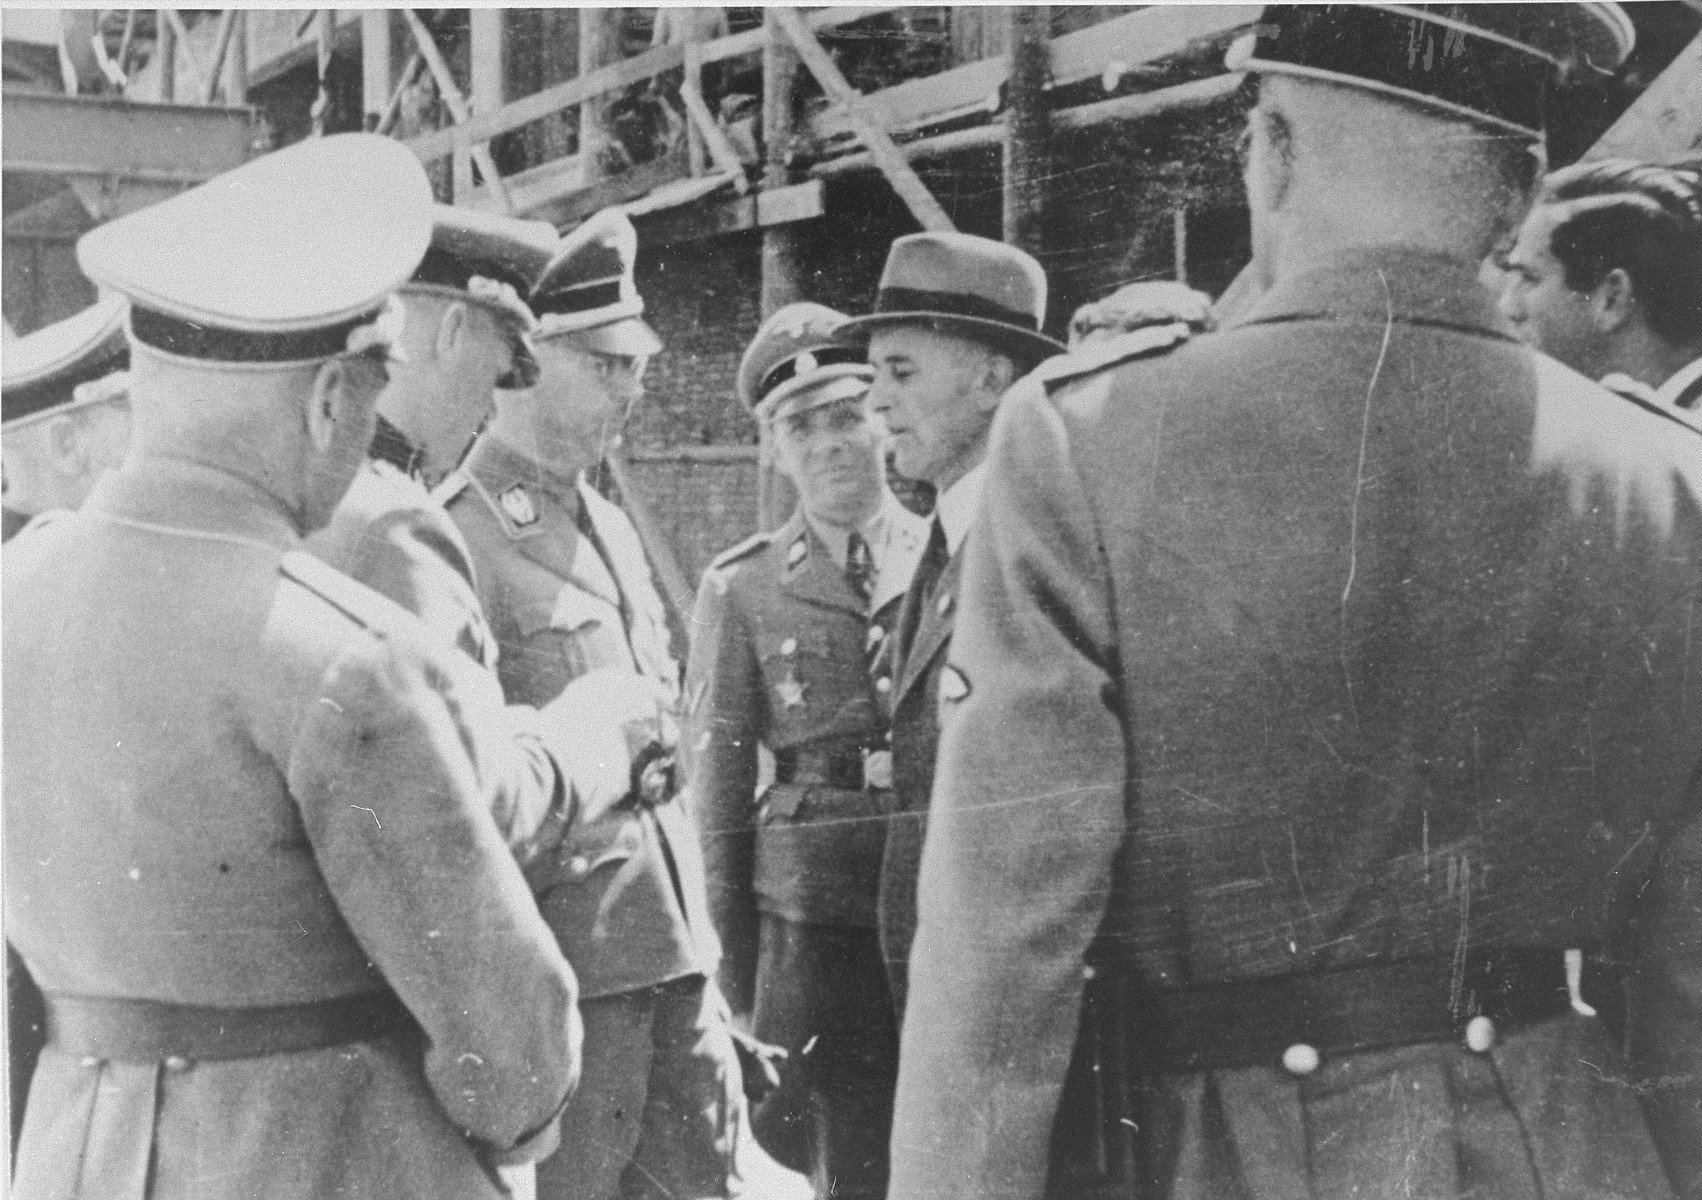 Officials at the Monowitz-Buna building site greet Reichsfuehrer SS Heinrich Himmler and his inspection team.     Among those pictured are Max Faust (wearing the fedora), the head of building operations for IG Farben in Monowitz-Buna; and Heinrich Himmler (third from the left).  Facign the camera (fourth from the left) is Rudolf Hoess, Commandant of Auschwitz.